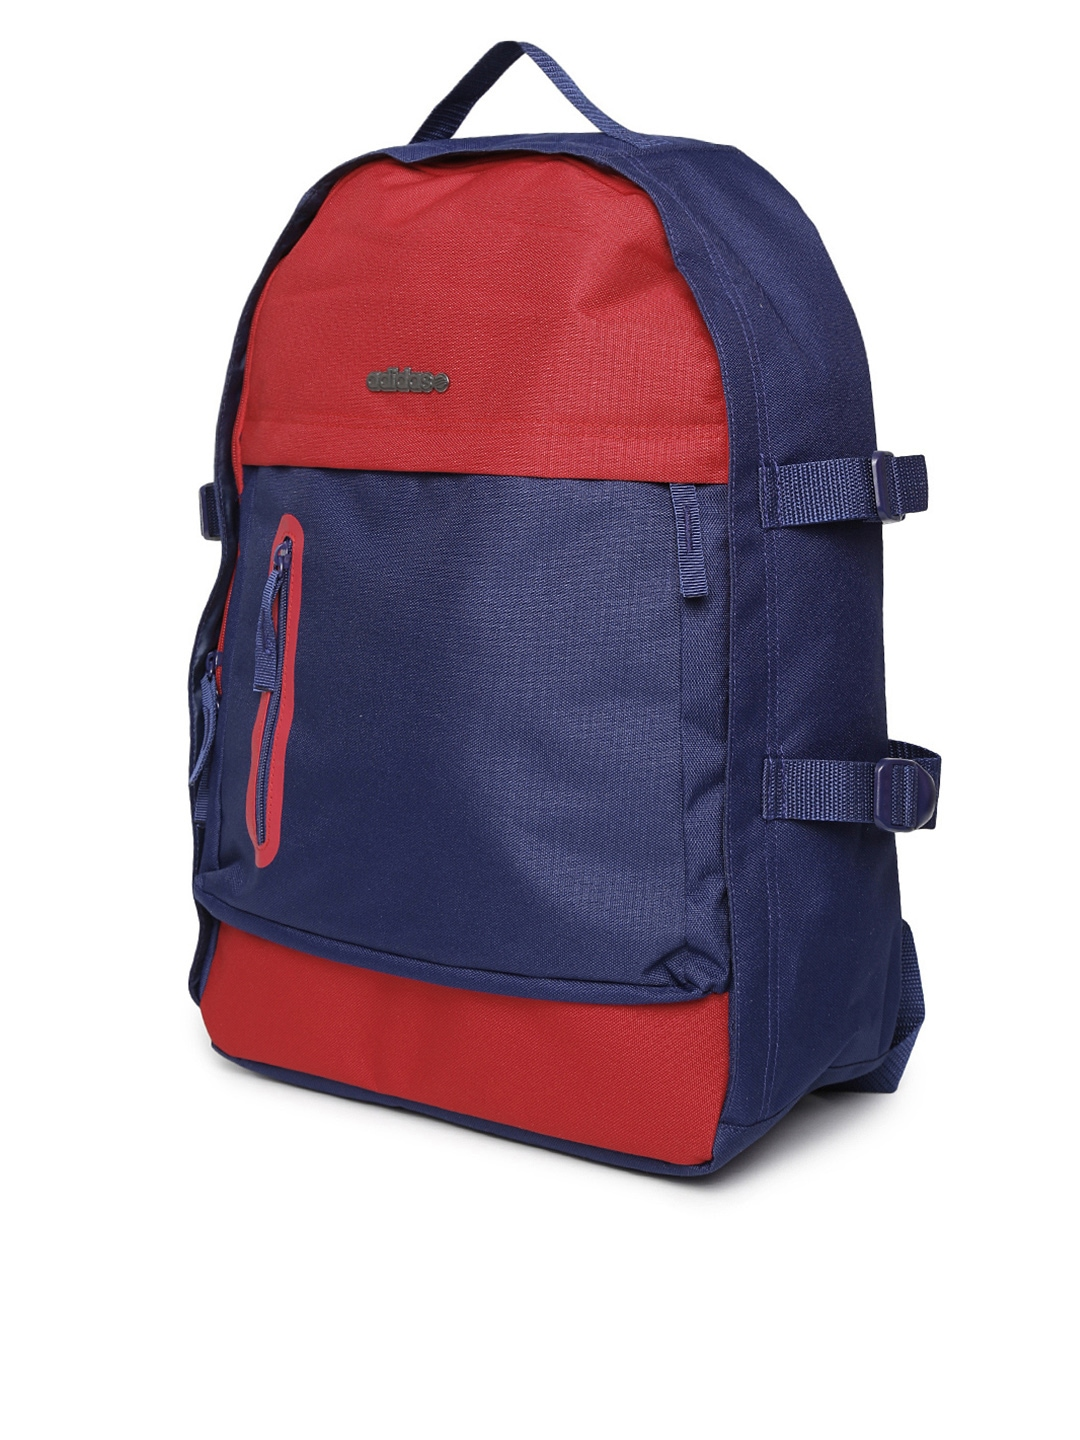 myntra adidas neo men blue red backpack 703382 buy. Black Bedroom Furniture Sets. Home Design Ideas